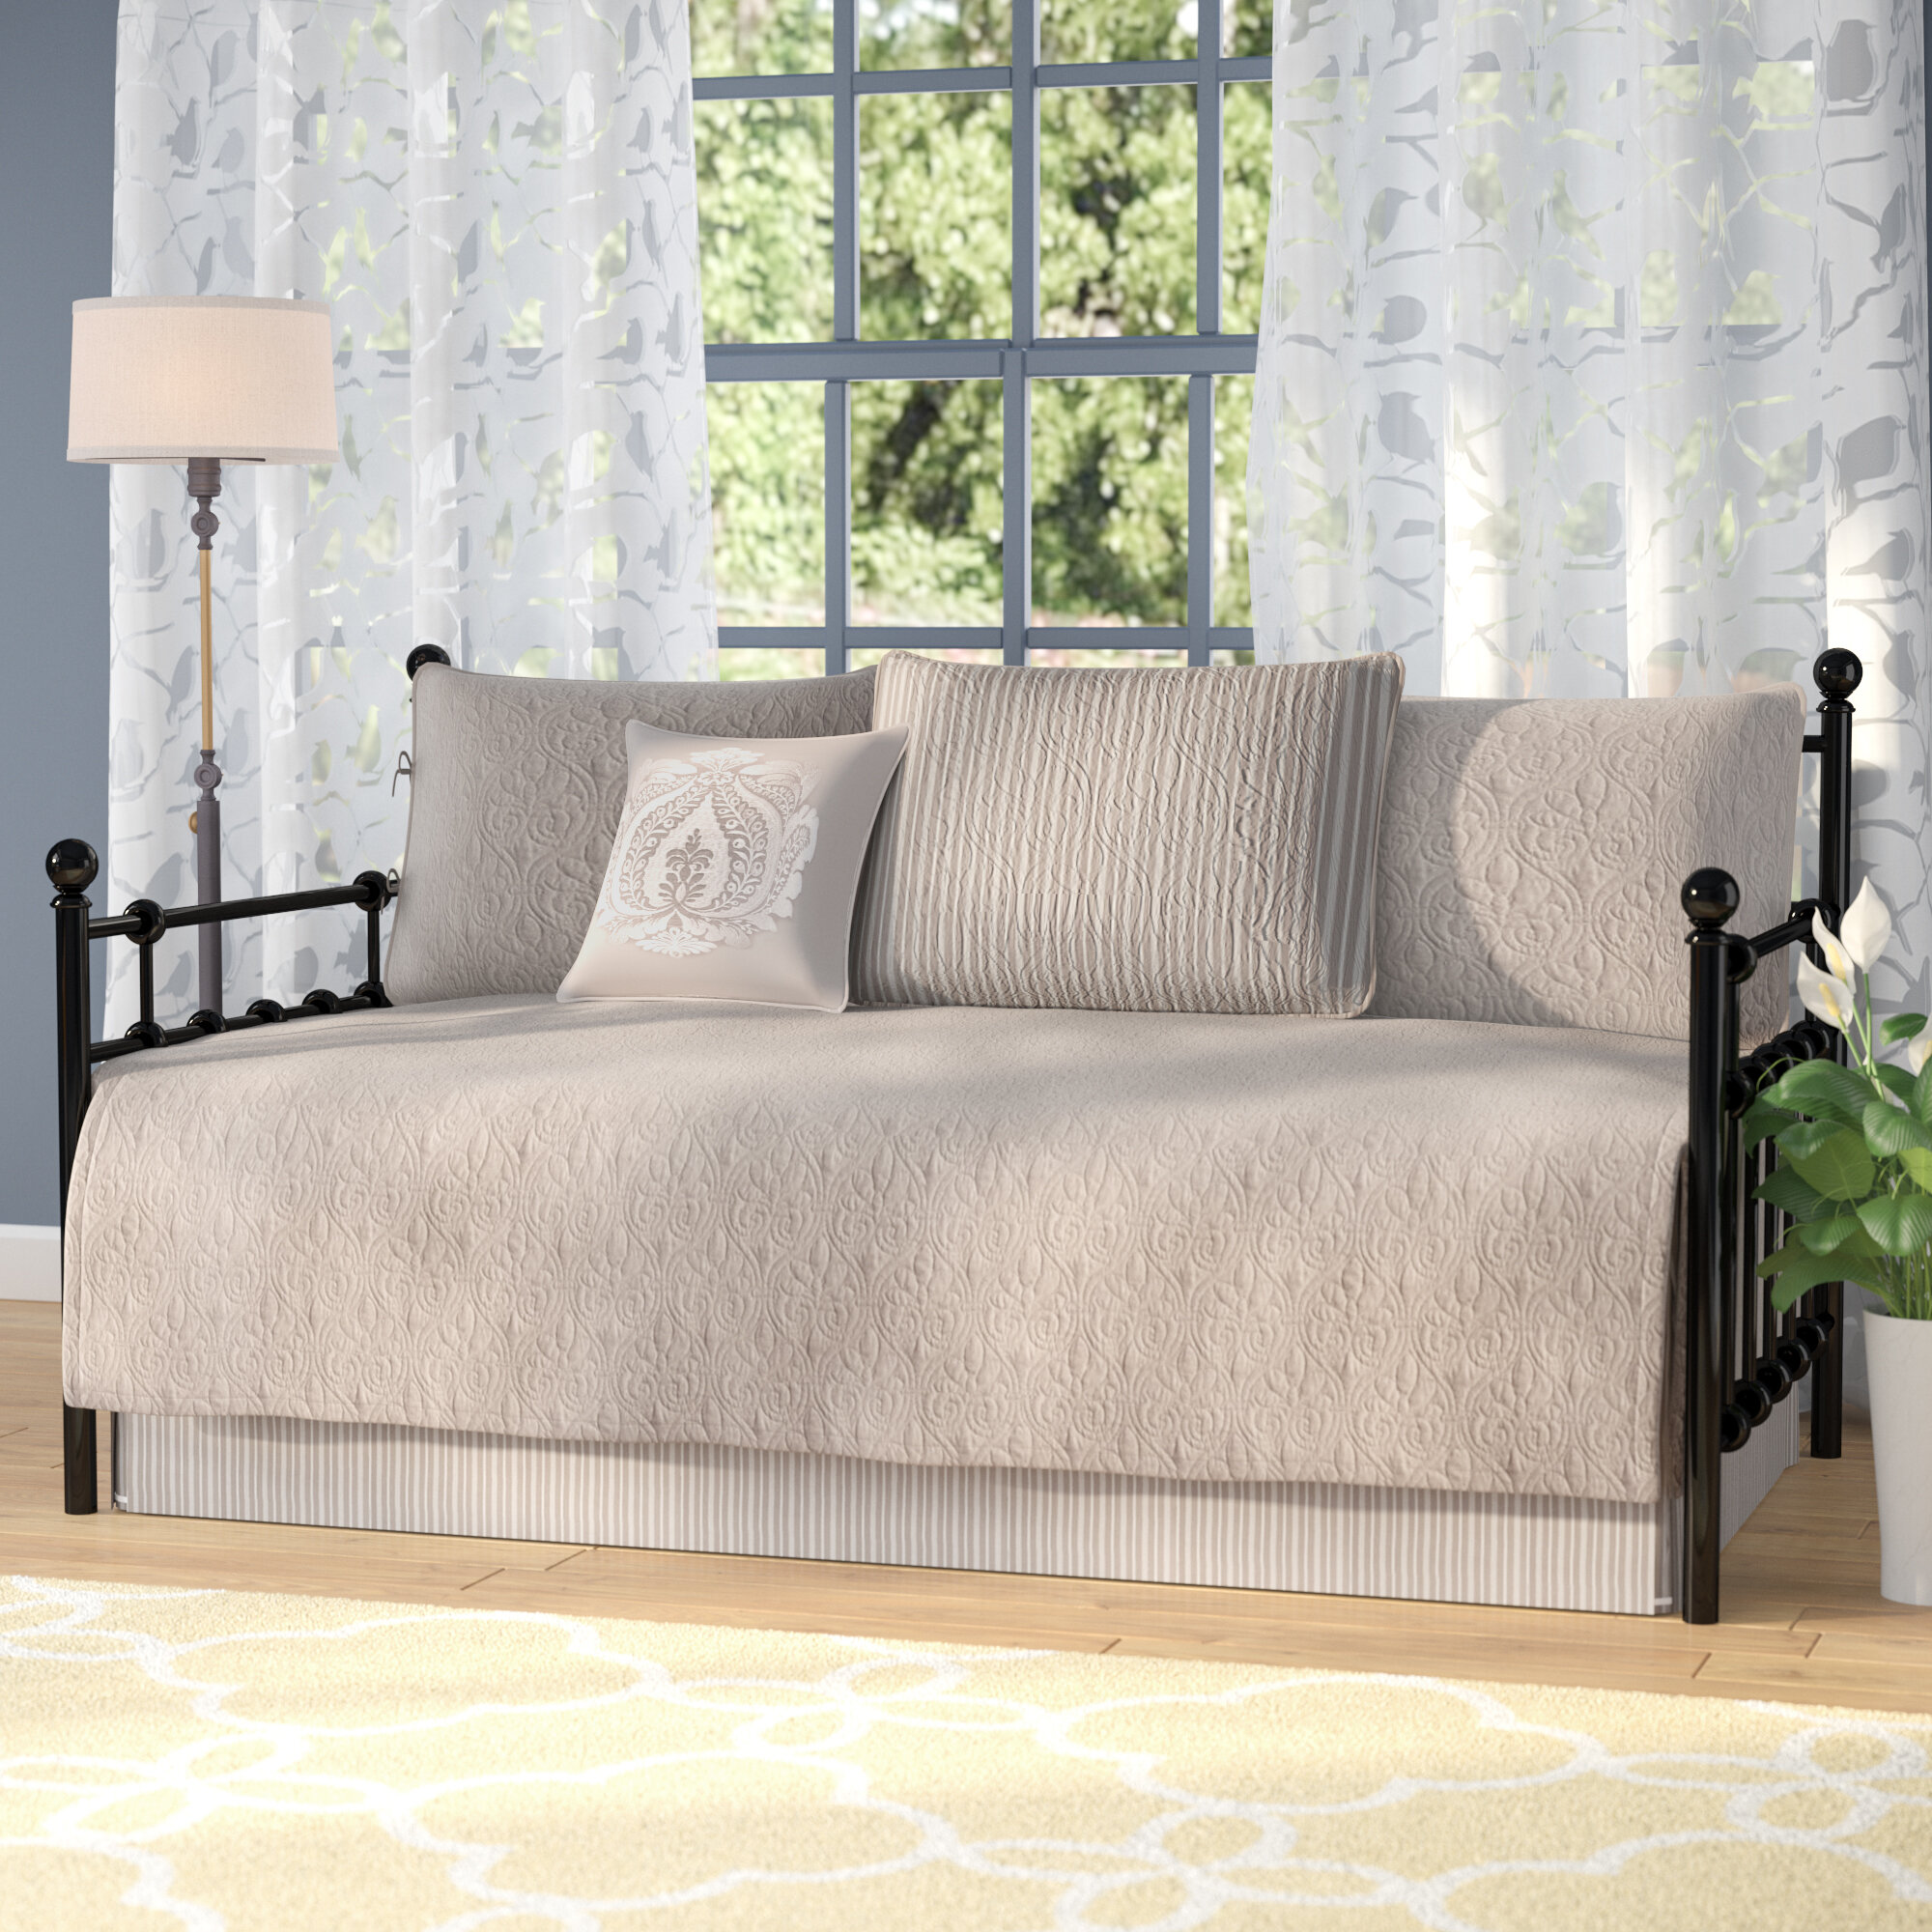 The Twillery Co. Epping 6 Piece Reversible Daybed Cover